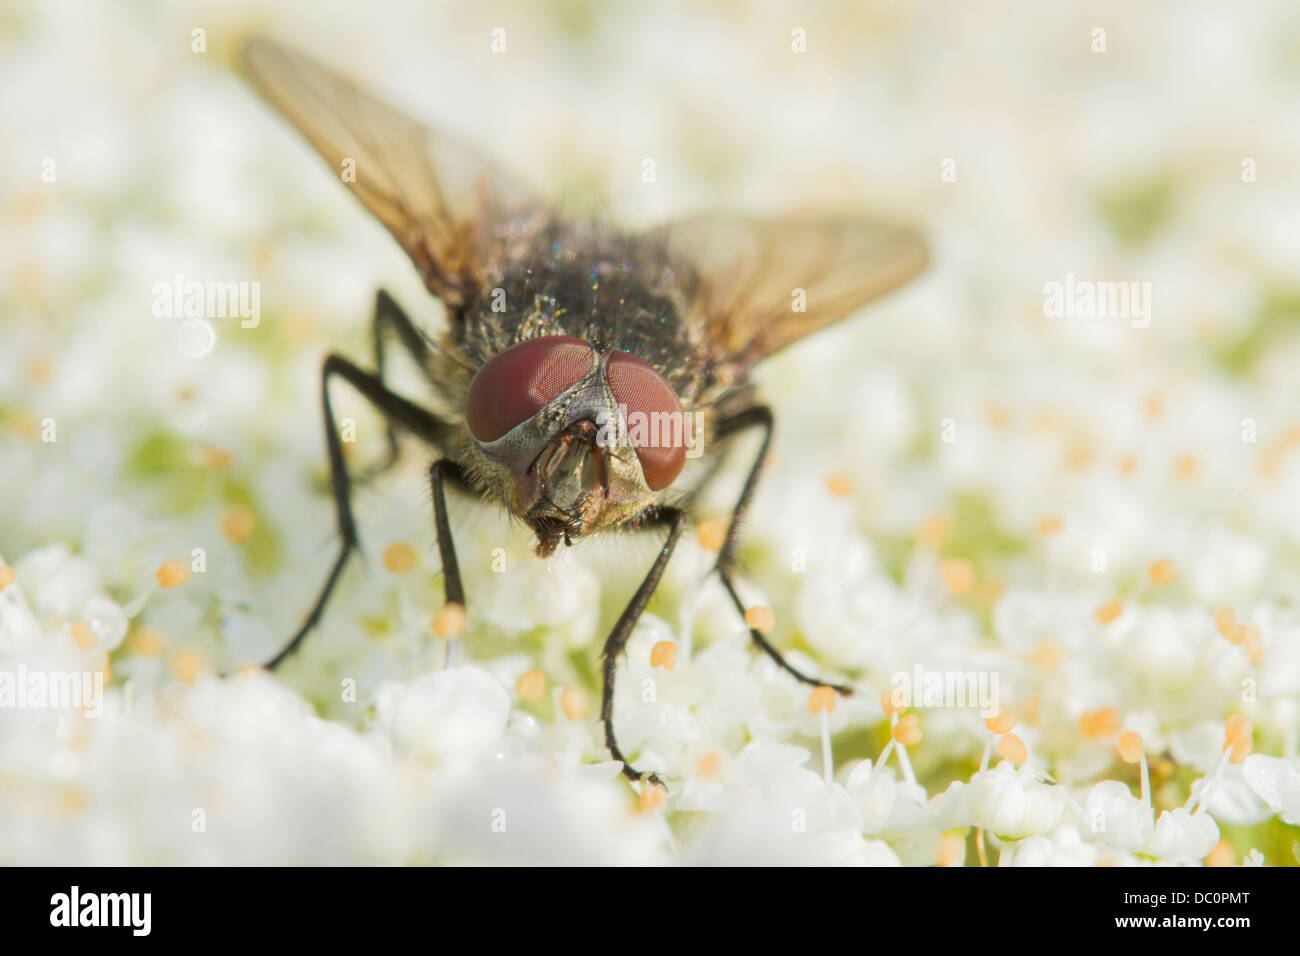 Tachinid fly perched on a white flower Stock Photo